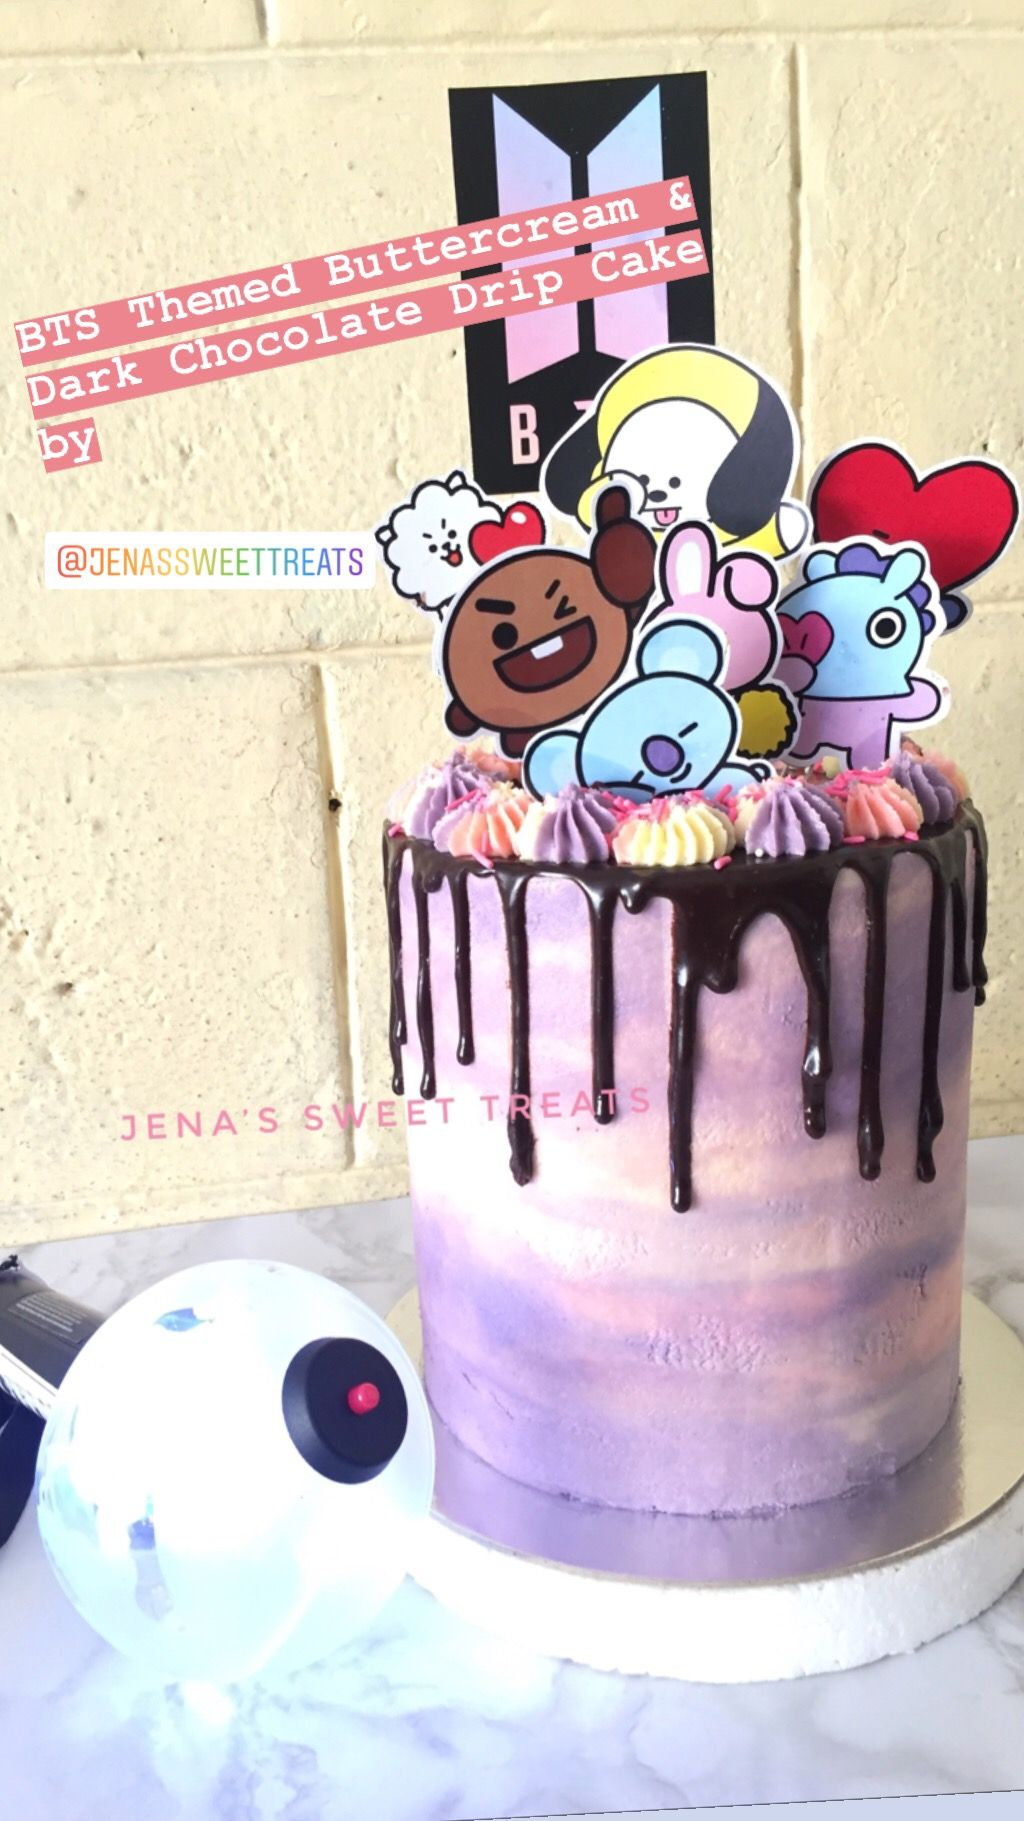 Bts Bt21 Themed Buttercream Chocolate Drip Cake Bts Cake Bts Birthdays Cake